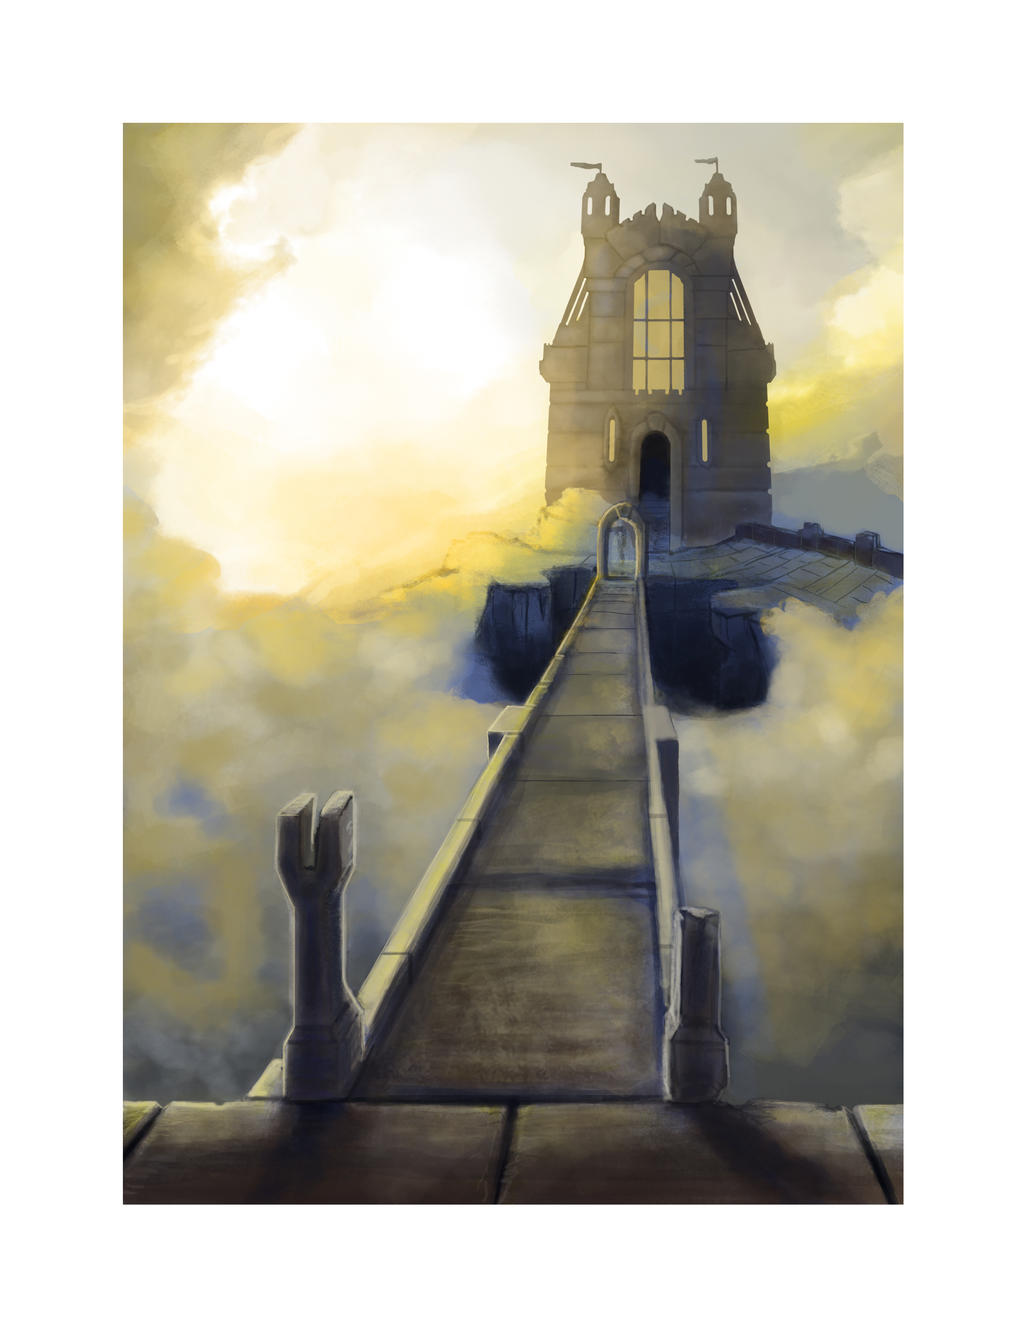 Castle In the Sky WIPV6 by Ethershadow